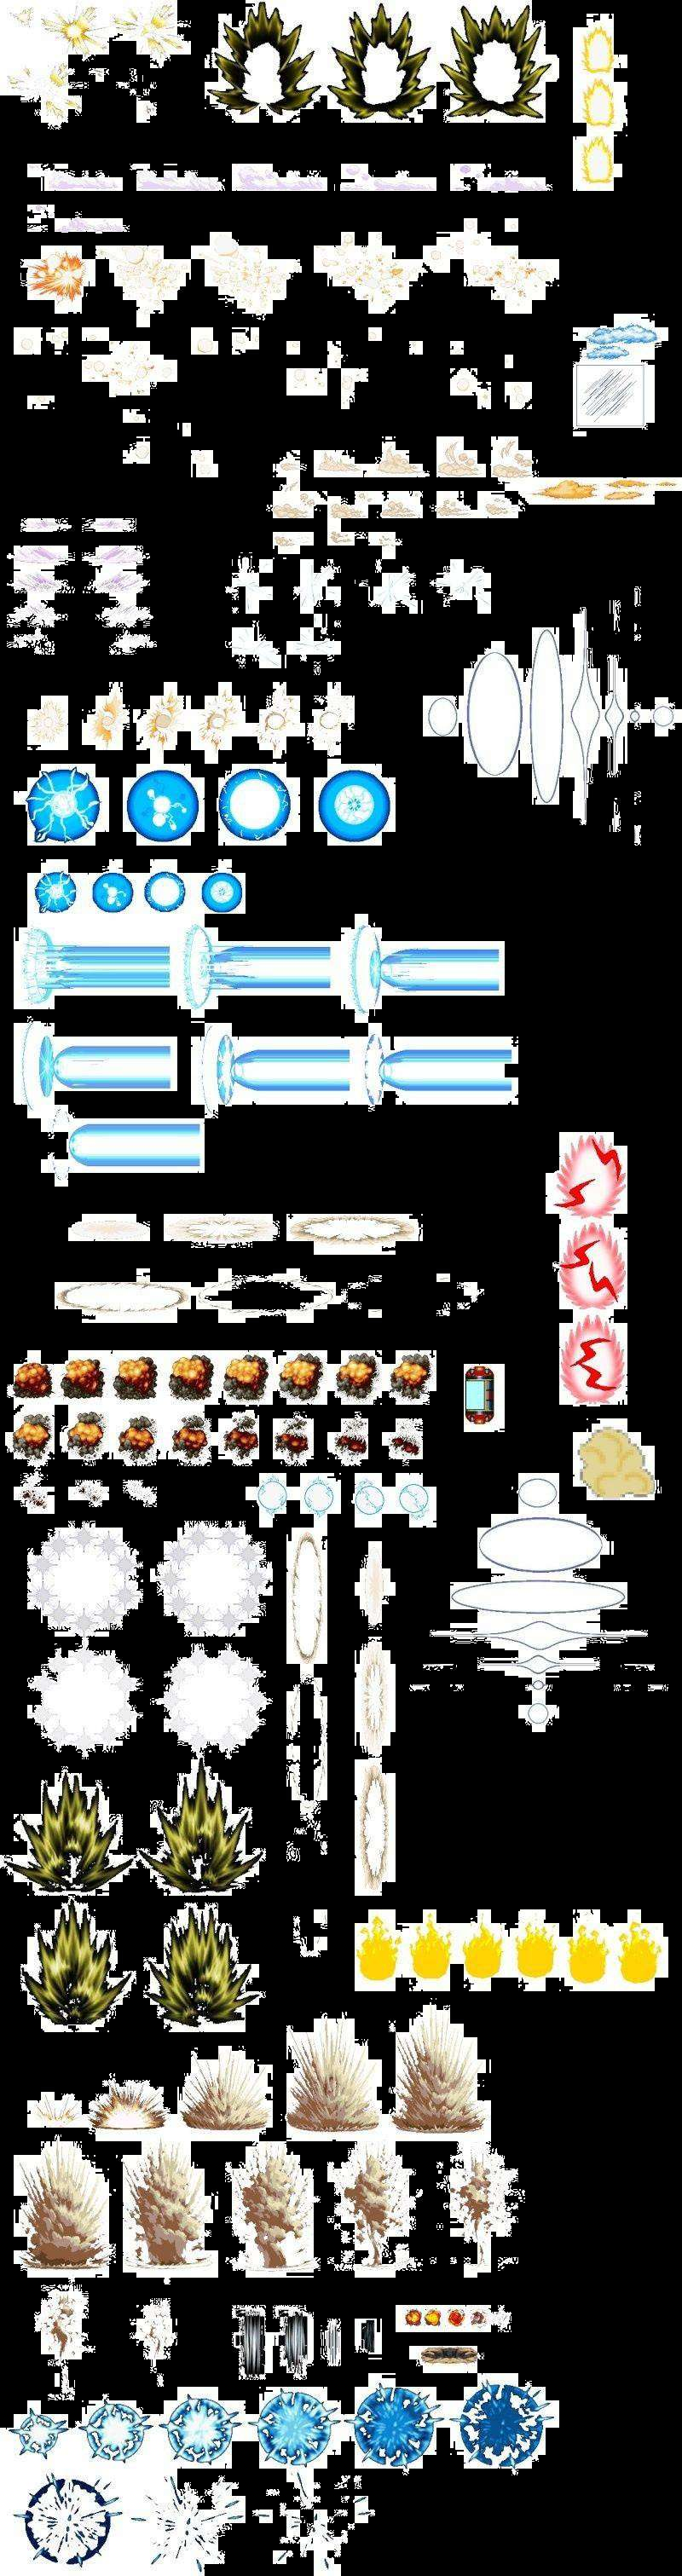 Need Mugen effects sprites Effect10